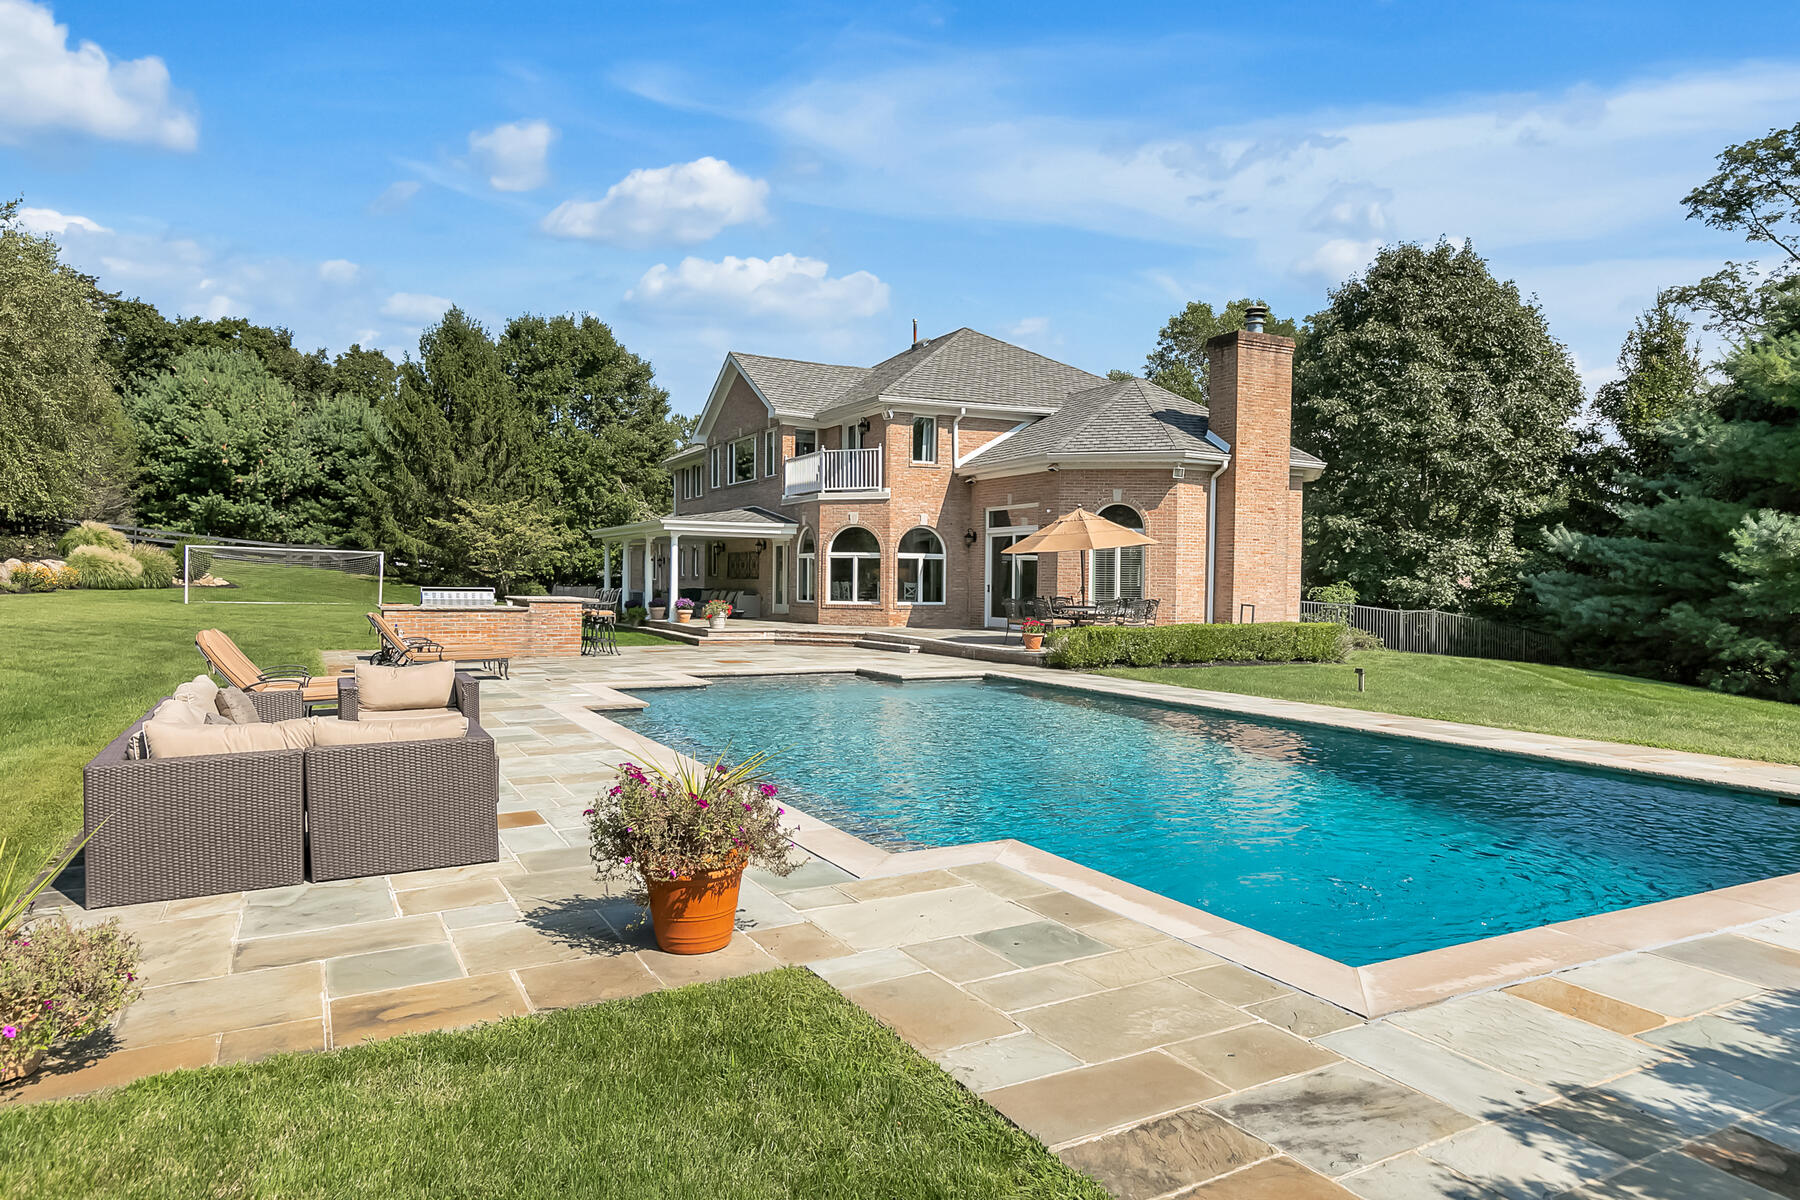 Single Family Homes for Sale at Extraordinary Custom Colonial 115 Clover Hill Road, Colts Neck, New Jersey 07722 United States